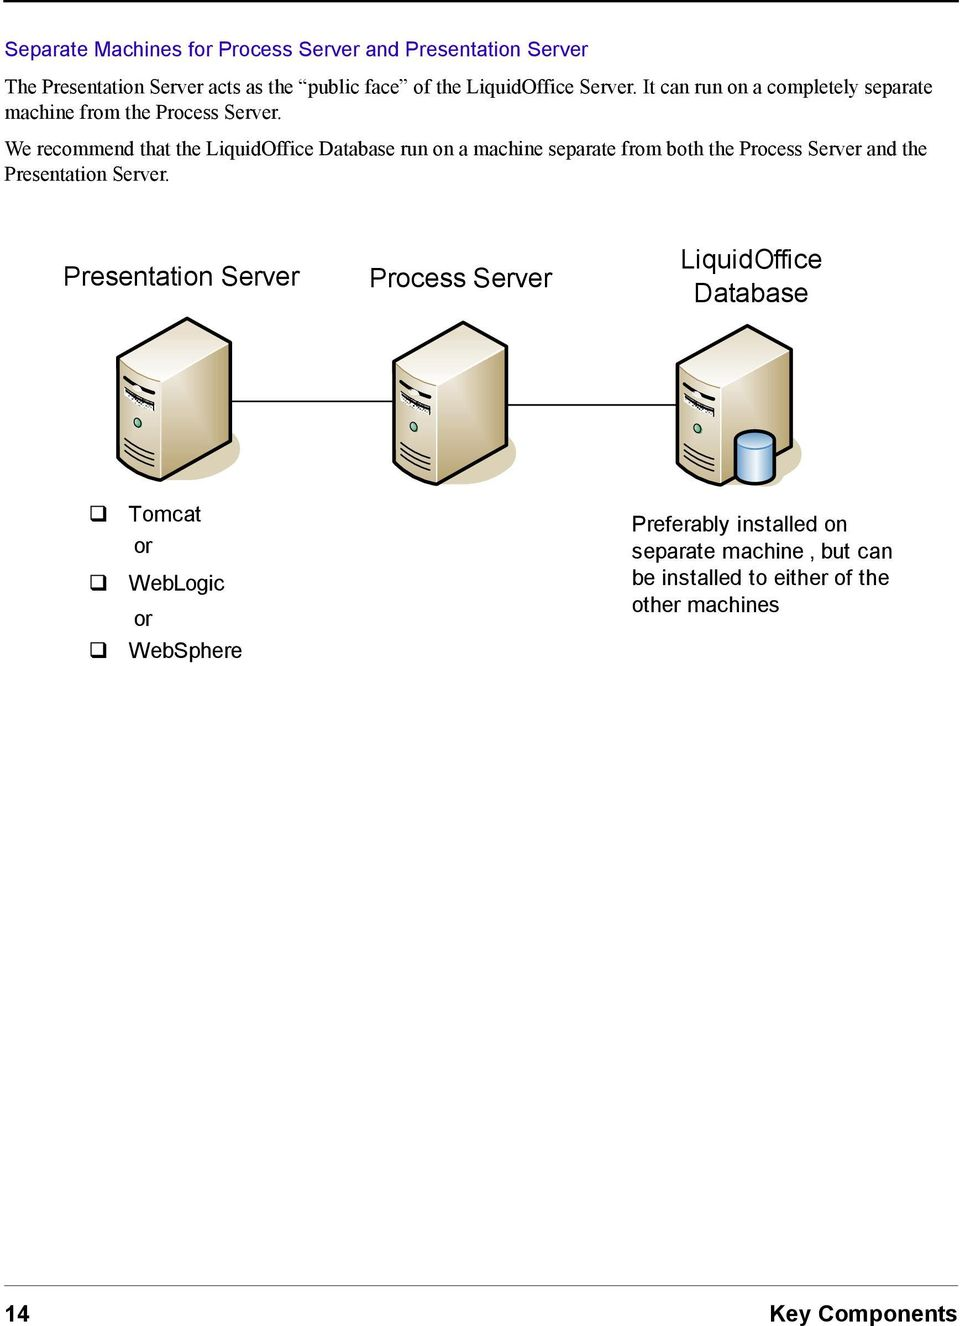 We recommend that the LiquidOffice Database run on a machine separate from both the Process Server and the Presentation Server.